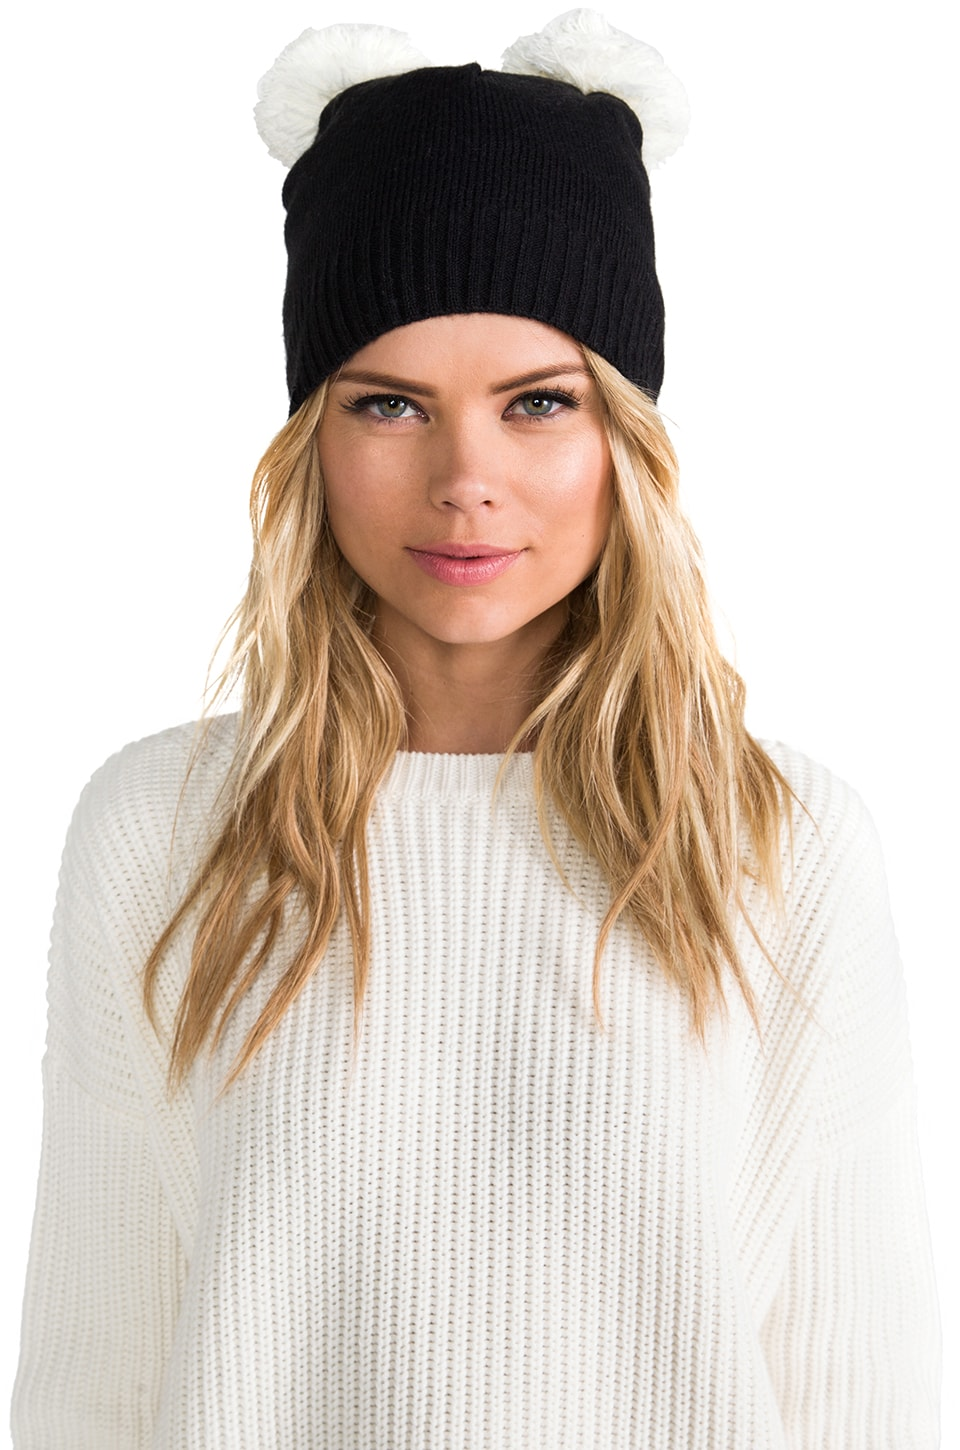 Plush Pom Pom Ear Hat in Black/White